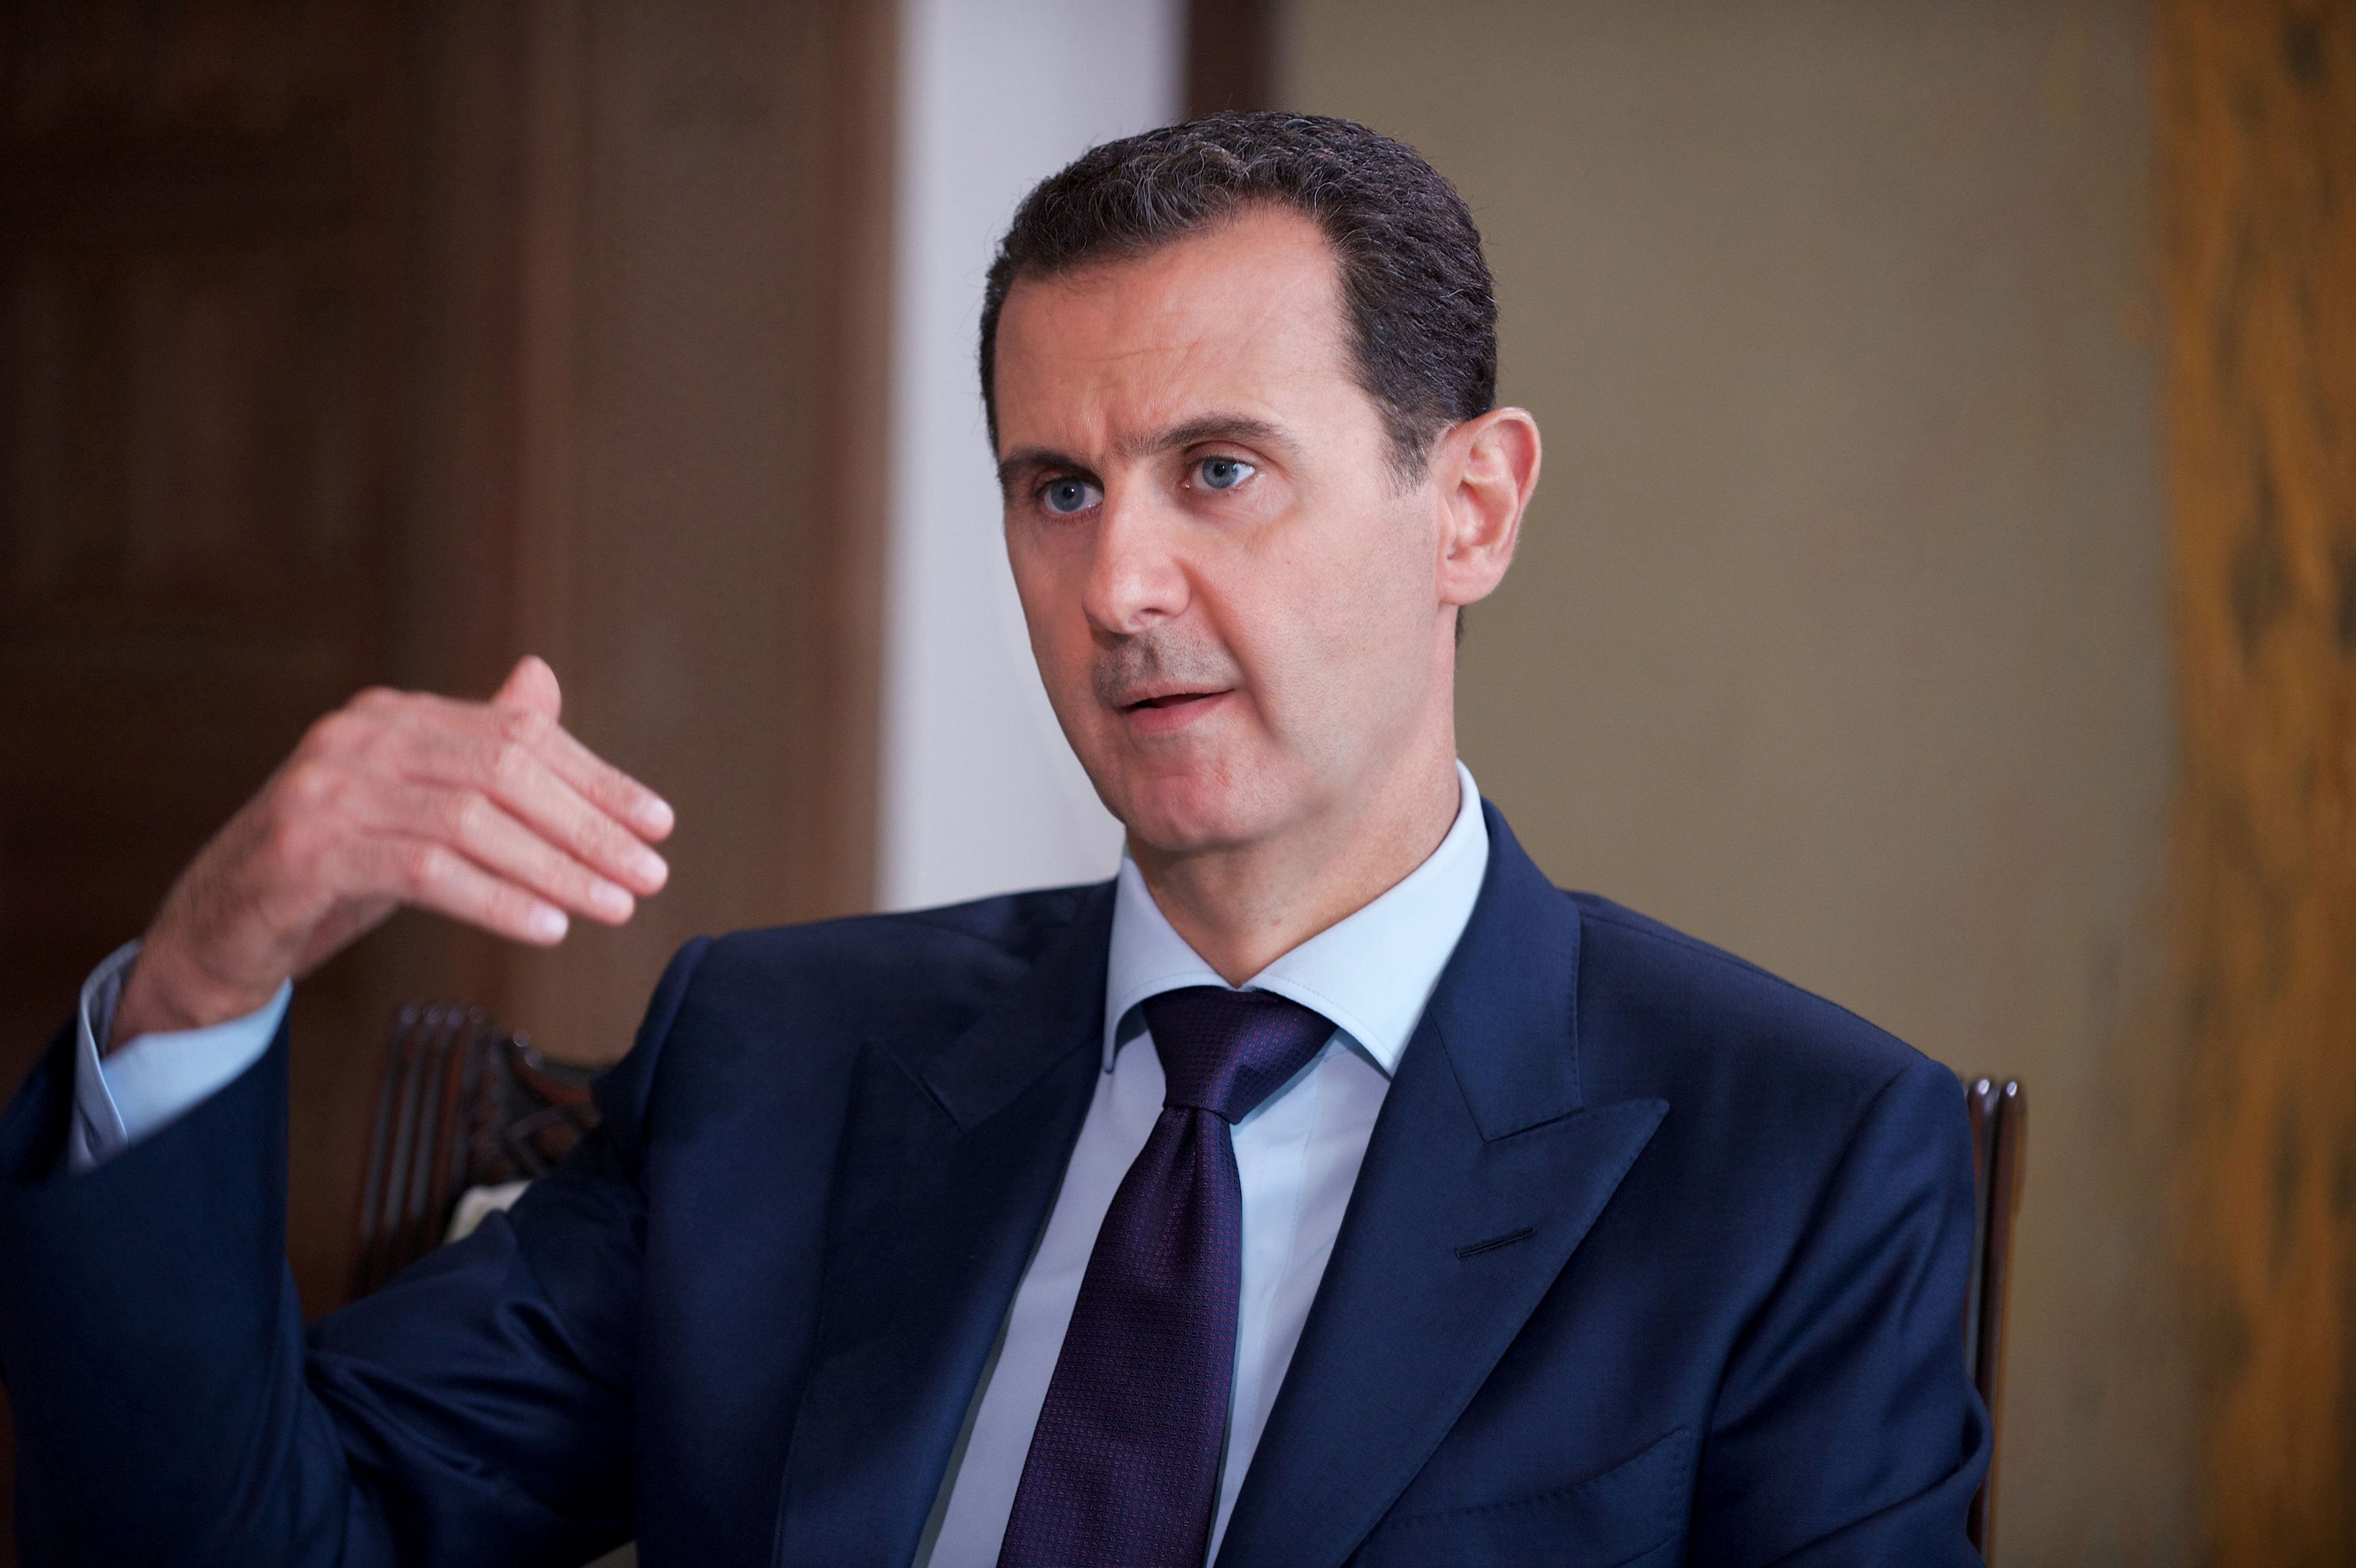 Syria's President Bashar al-Assad speaks during an interview with Australia's SBS News channel in this handout picture provid